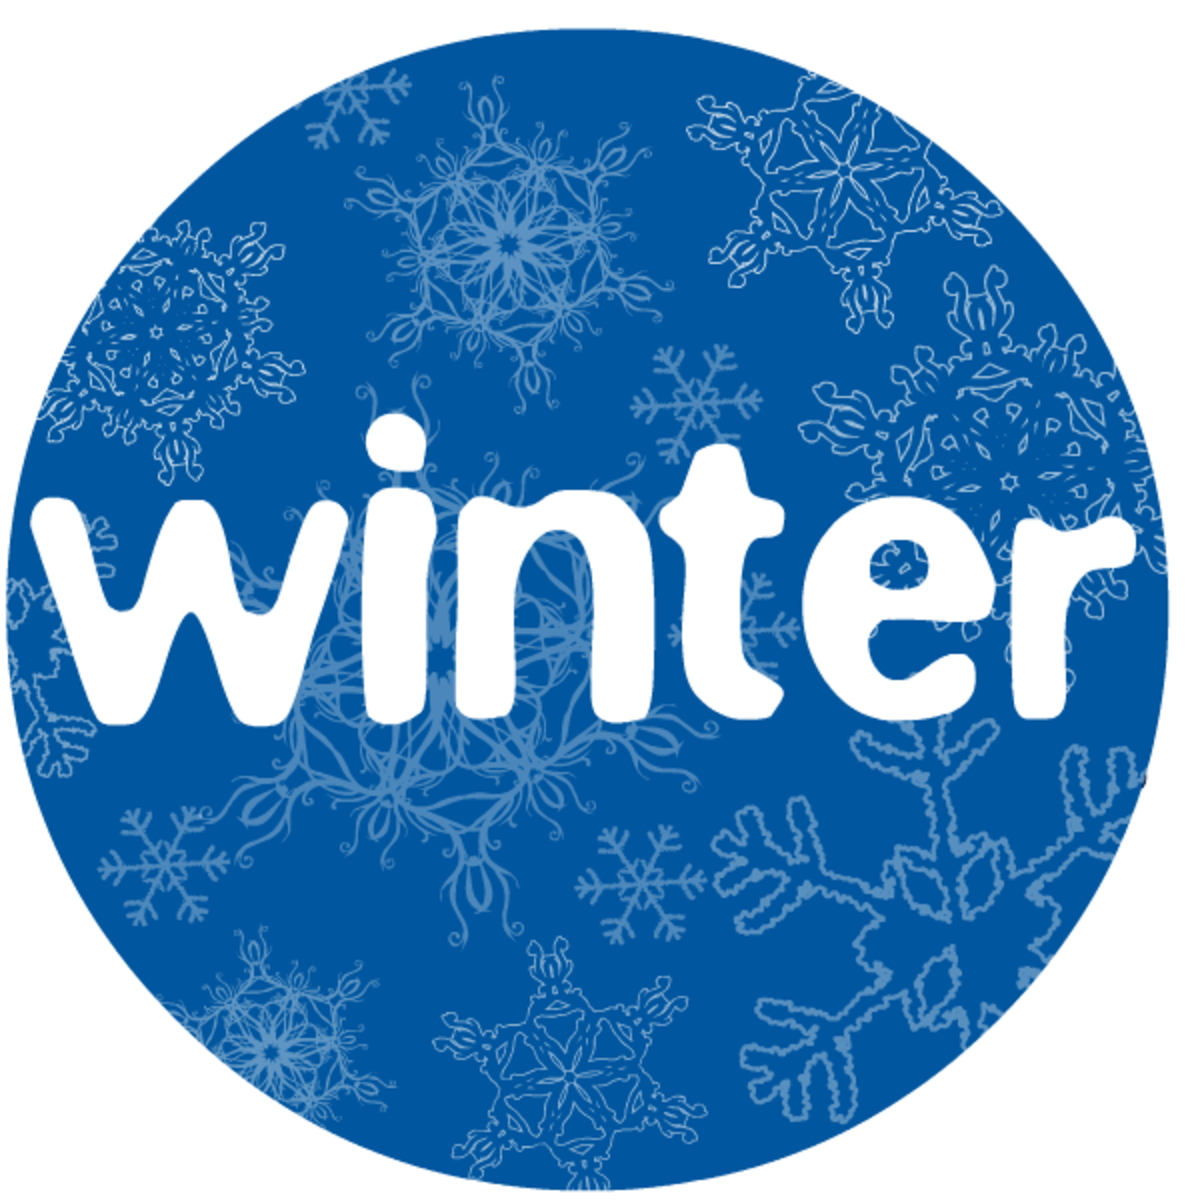 Winter clip art: Winter typography with snowflakes in a circle